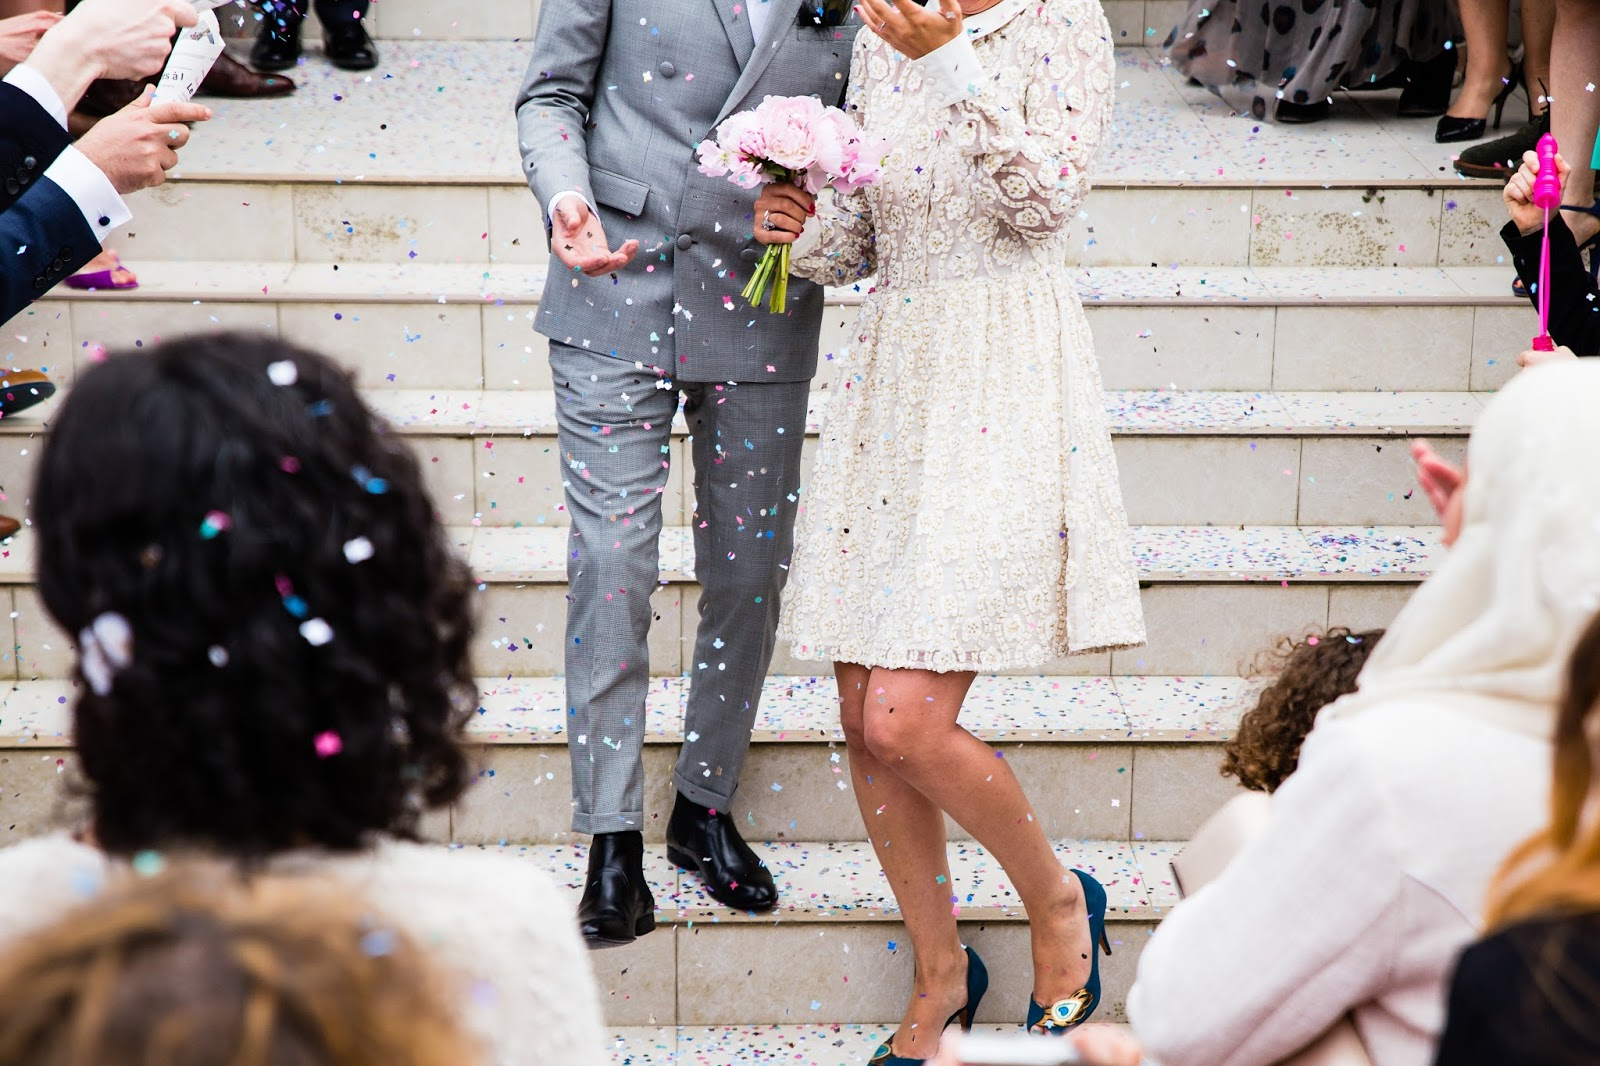 Brides & Grooms, Here's How To Plan A Special Wedding!